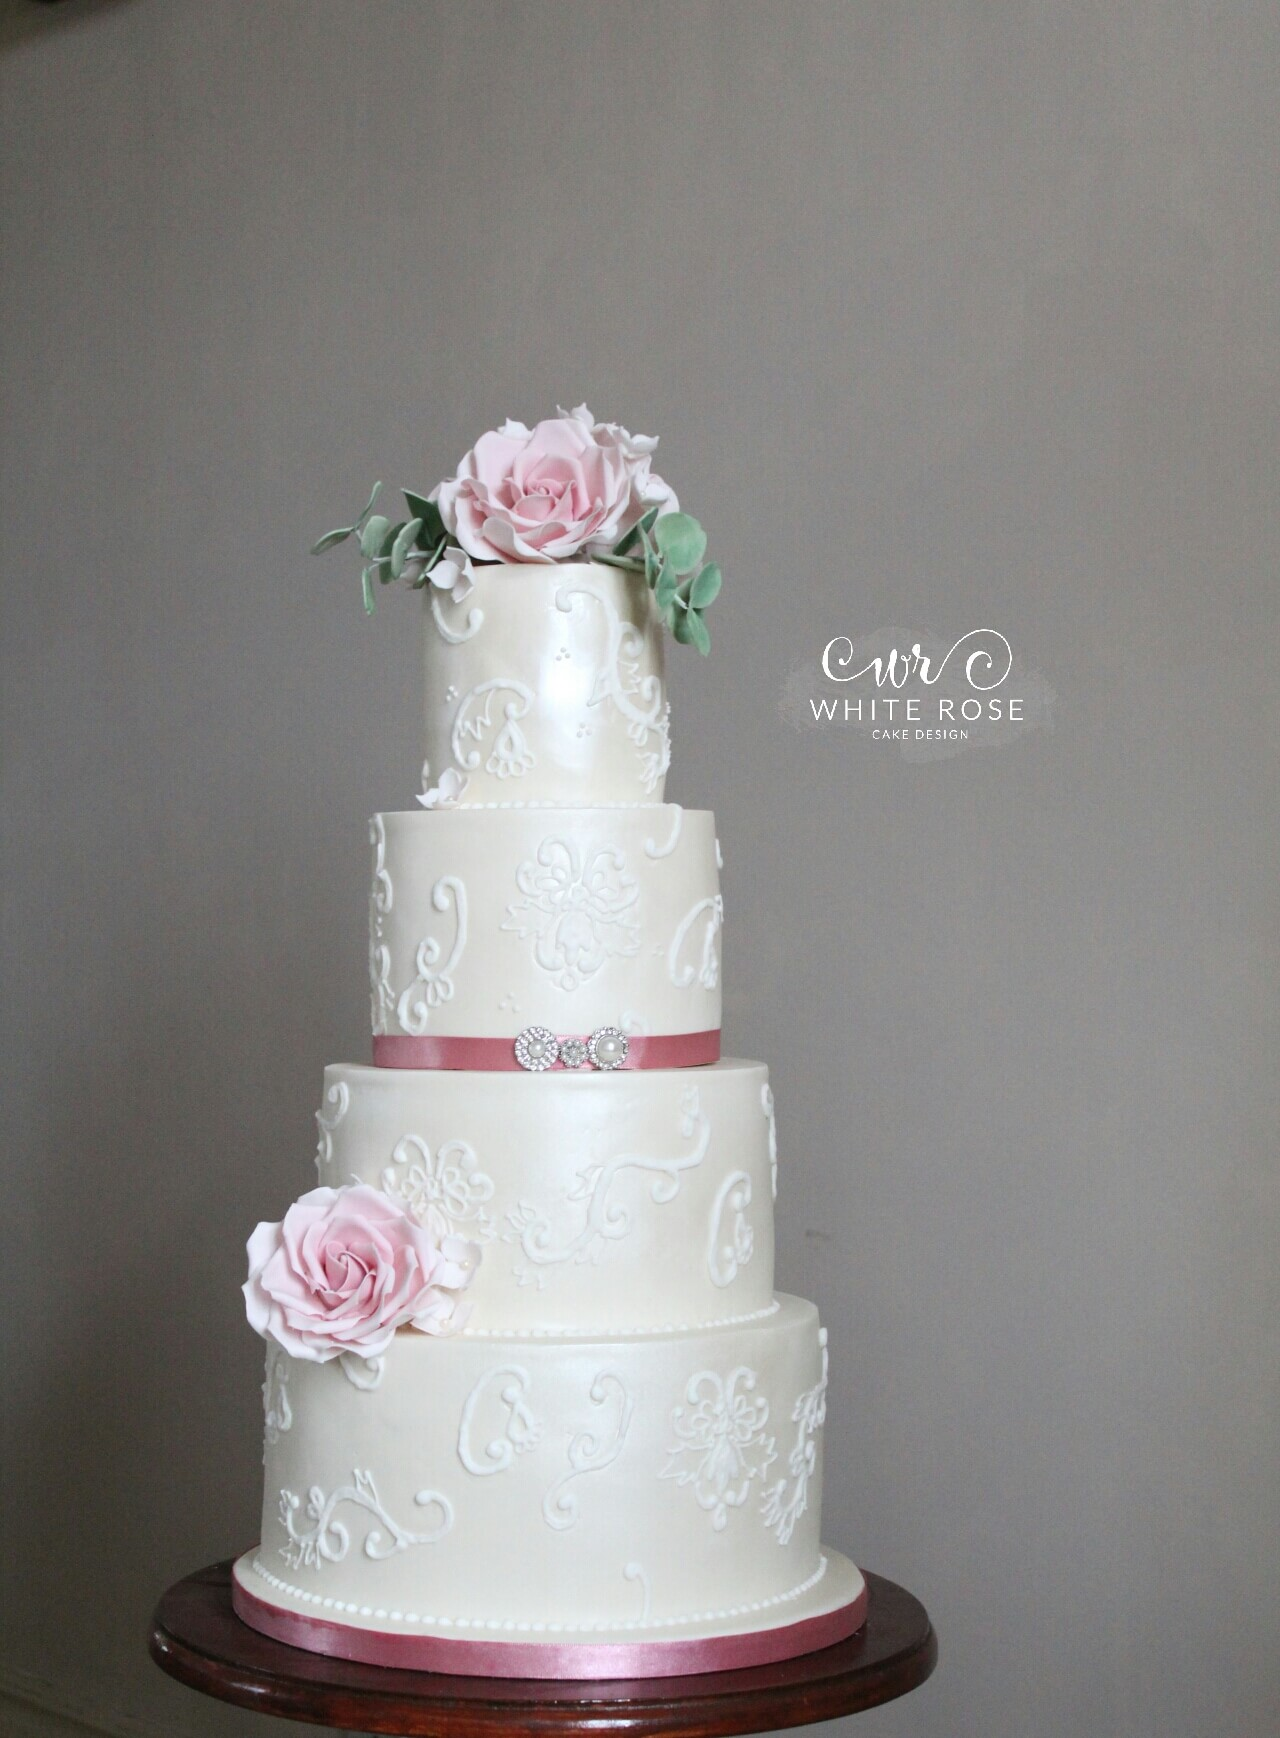 Dusky Pink Roses and Piped Lace Elegant Vintage 4 Tier Wedding Cake by White Rose Cake Design Wedding Cakes in Holmfirth, West Yorkshire, Leeds